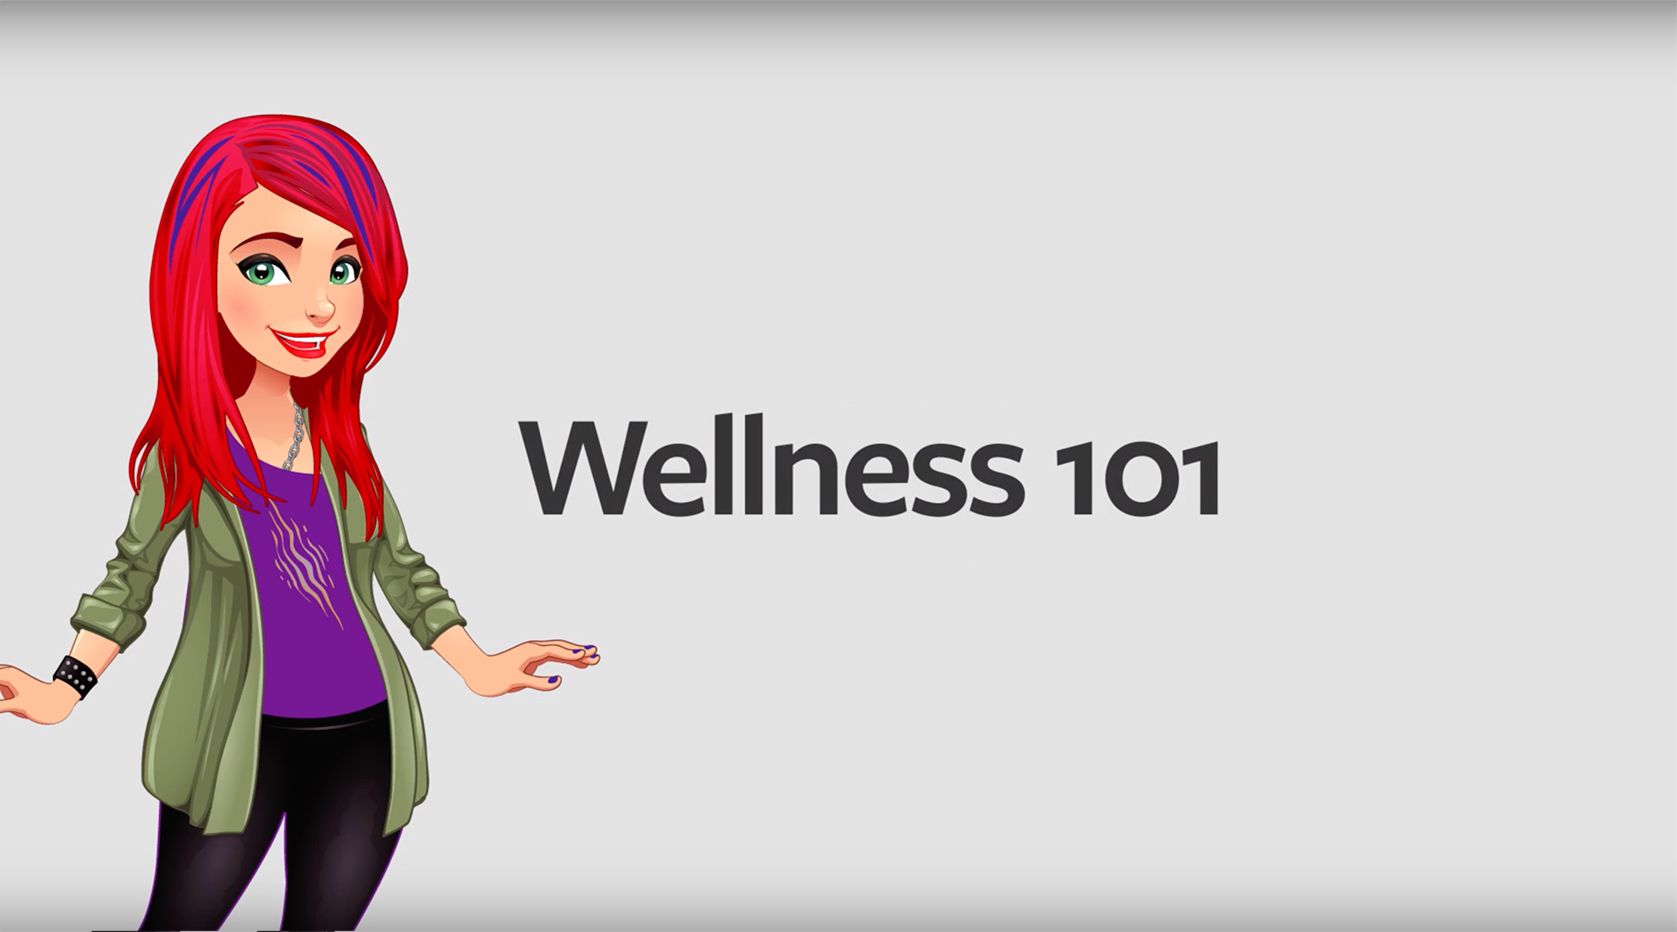 Wellness 101 with a graphic of a diverse student